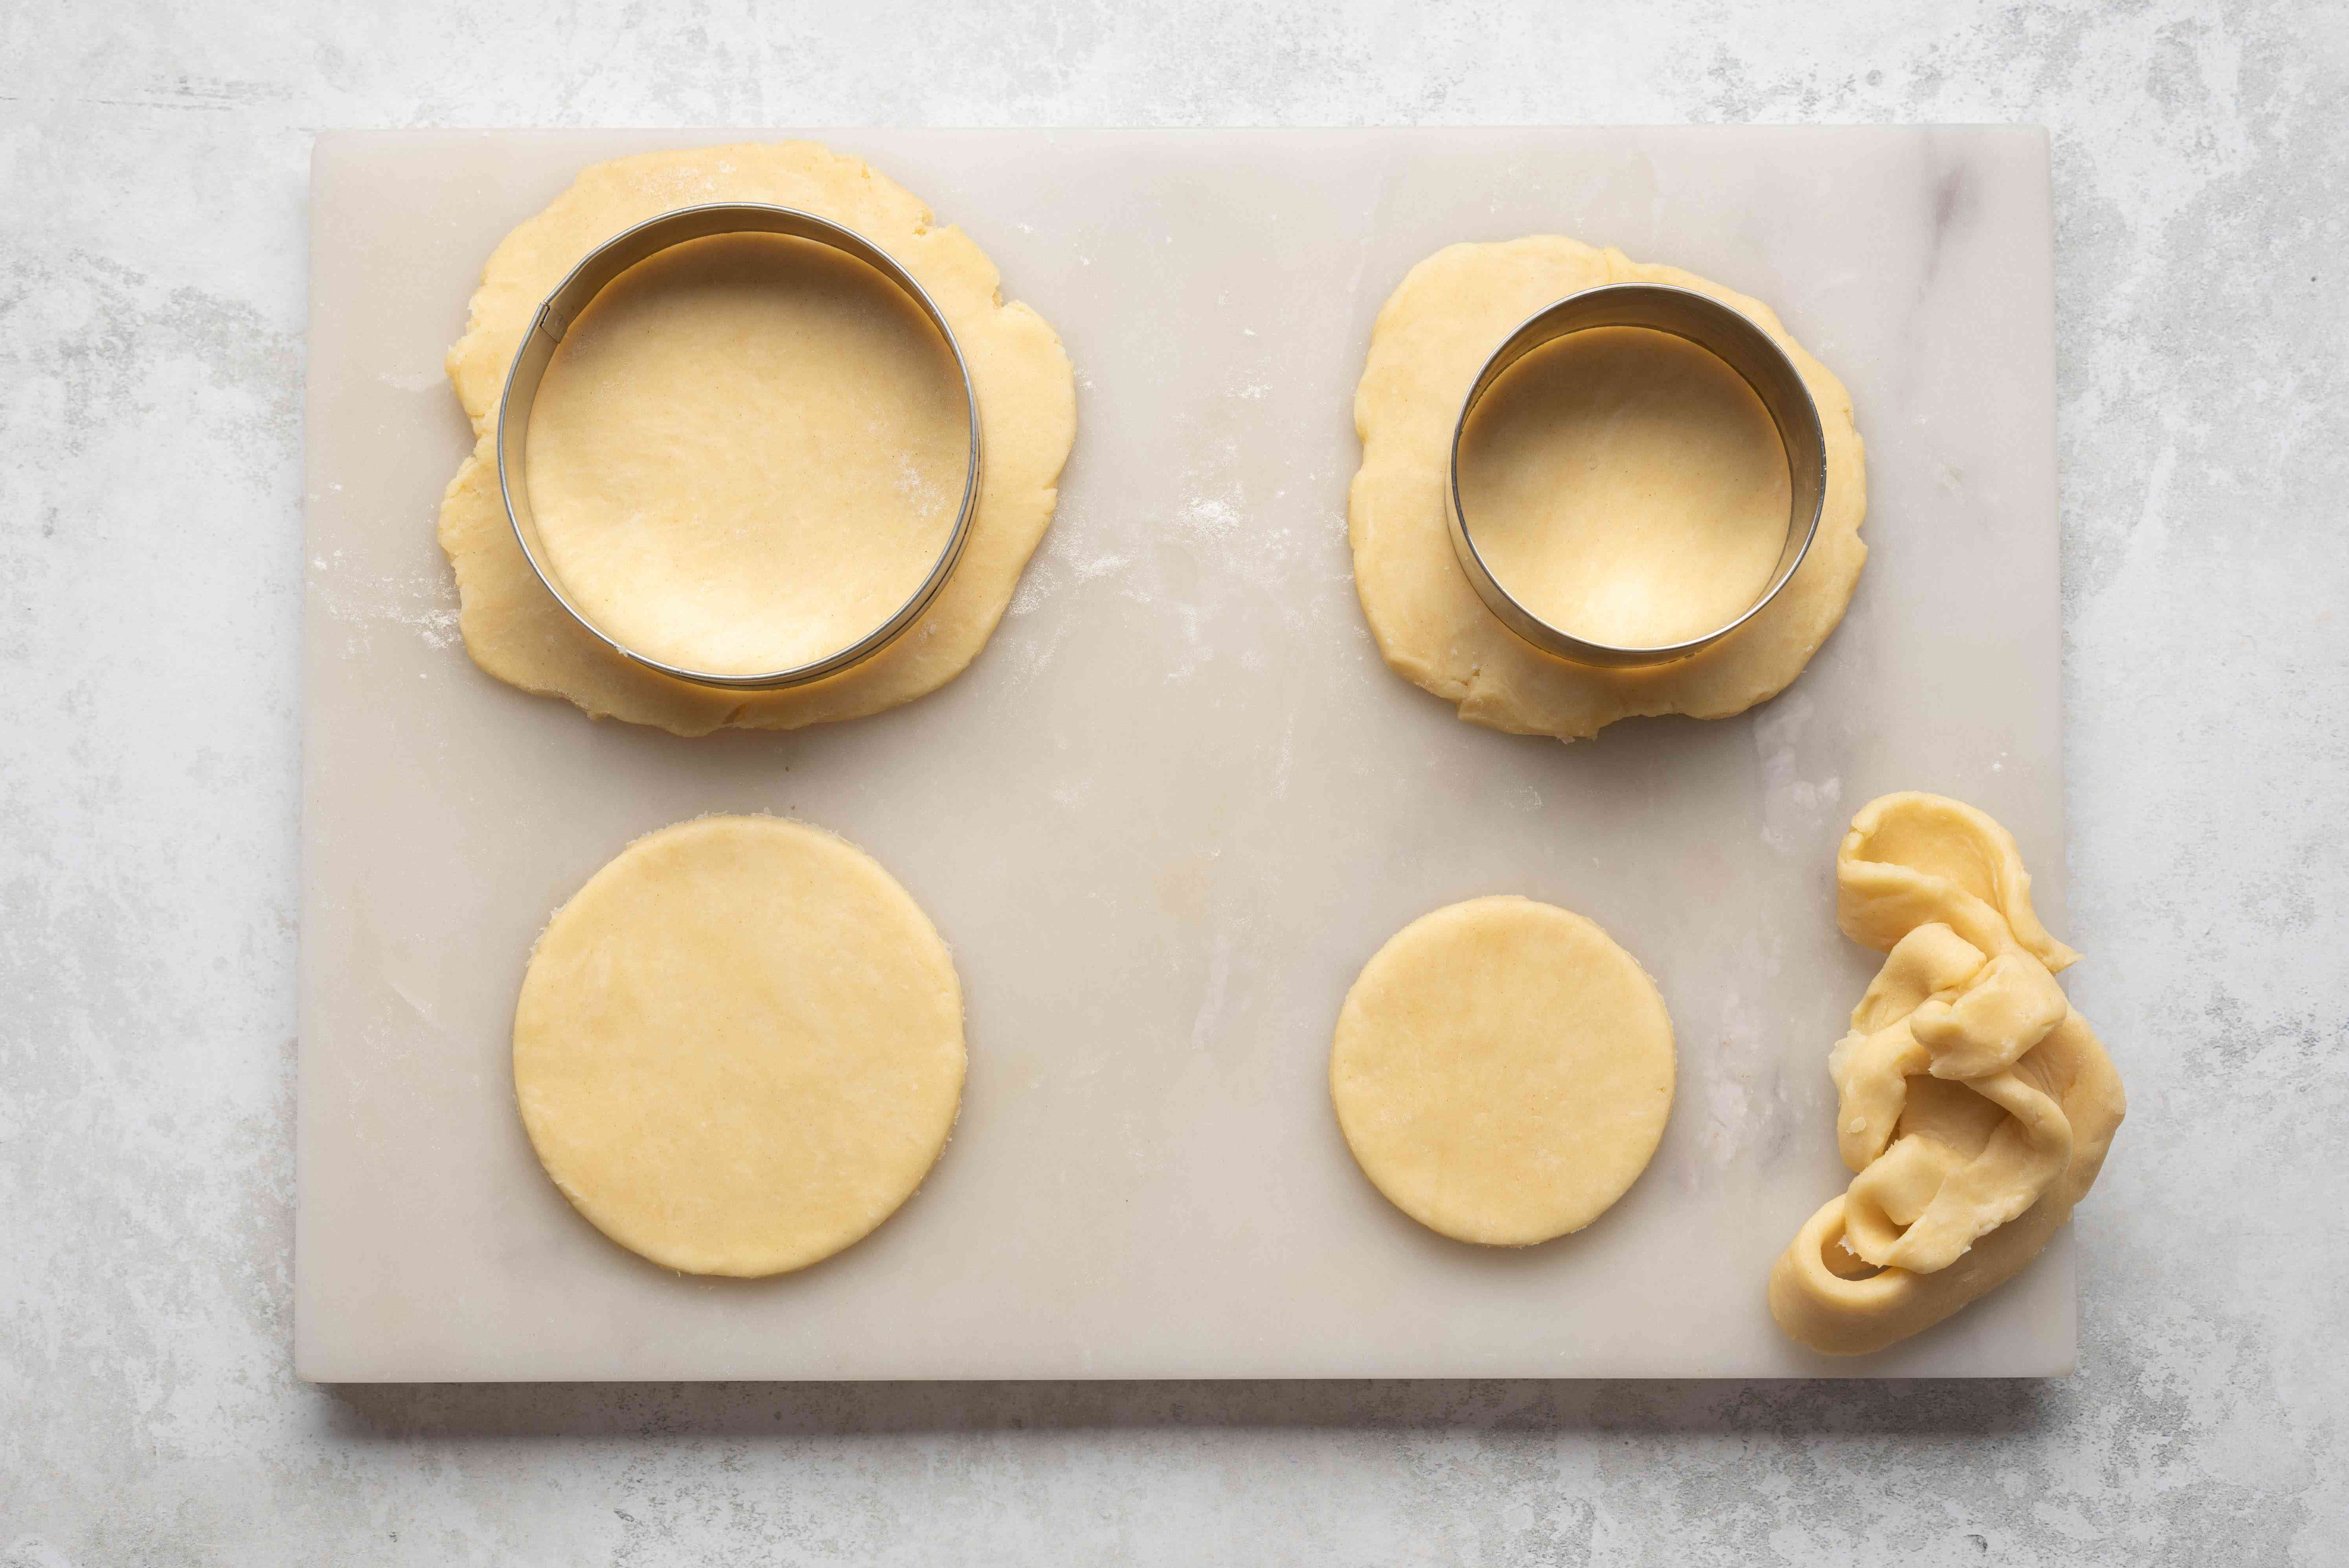 Trim excess crust dough with cookie cutters